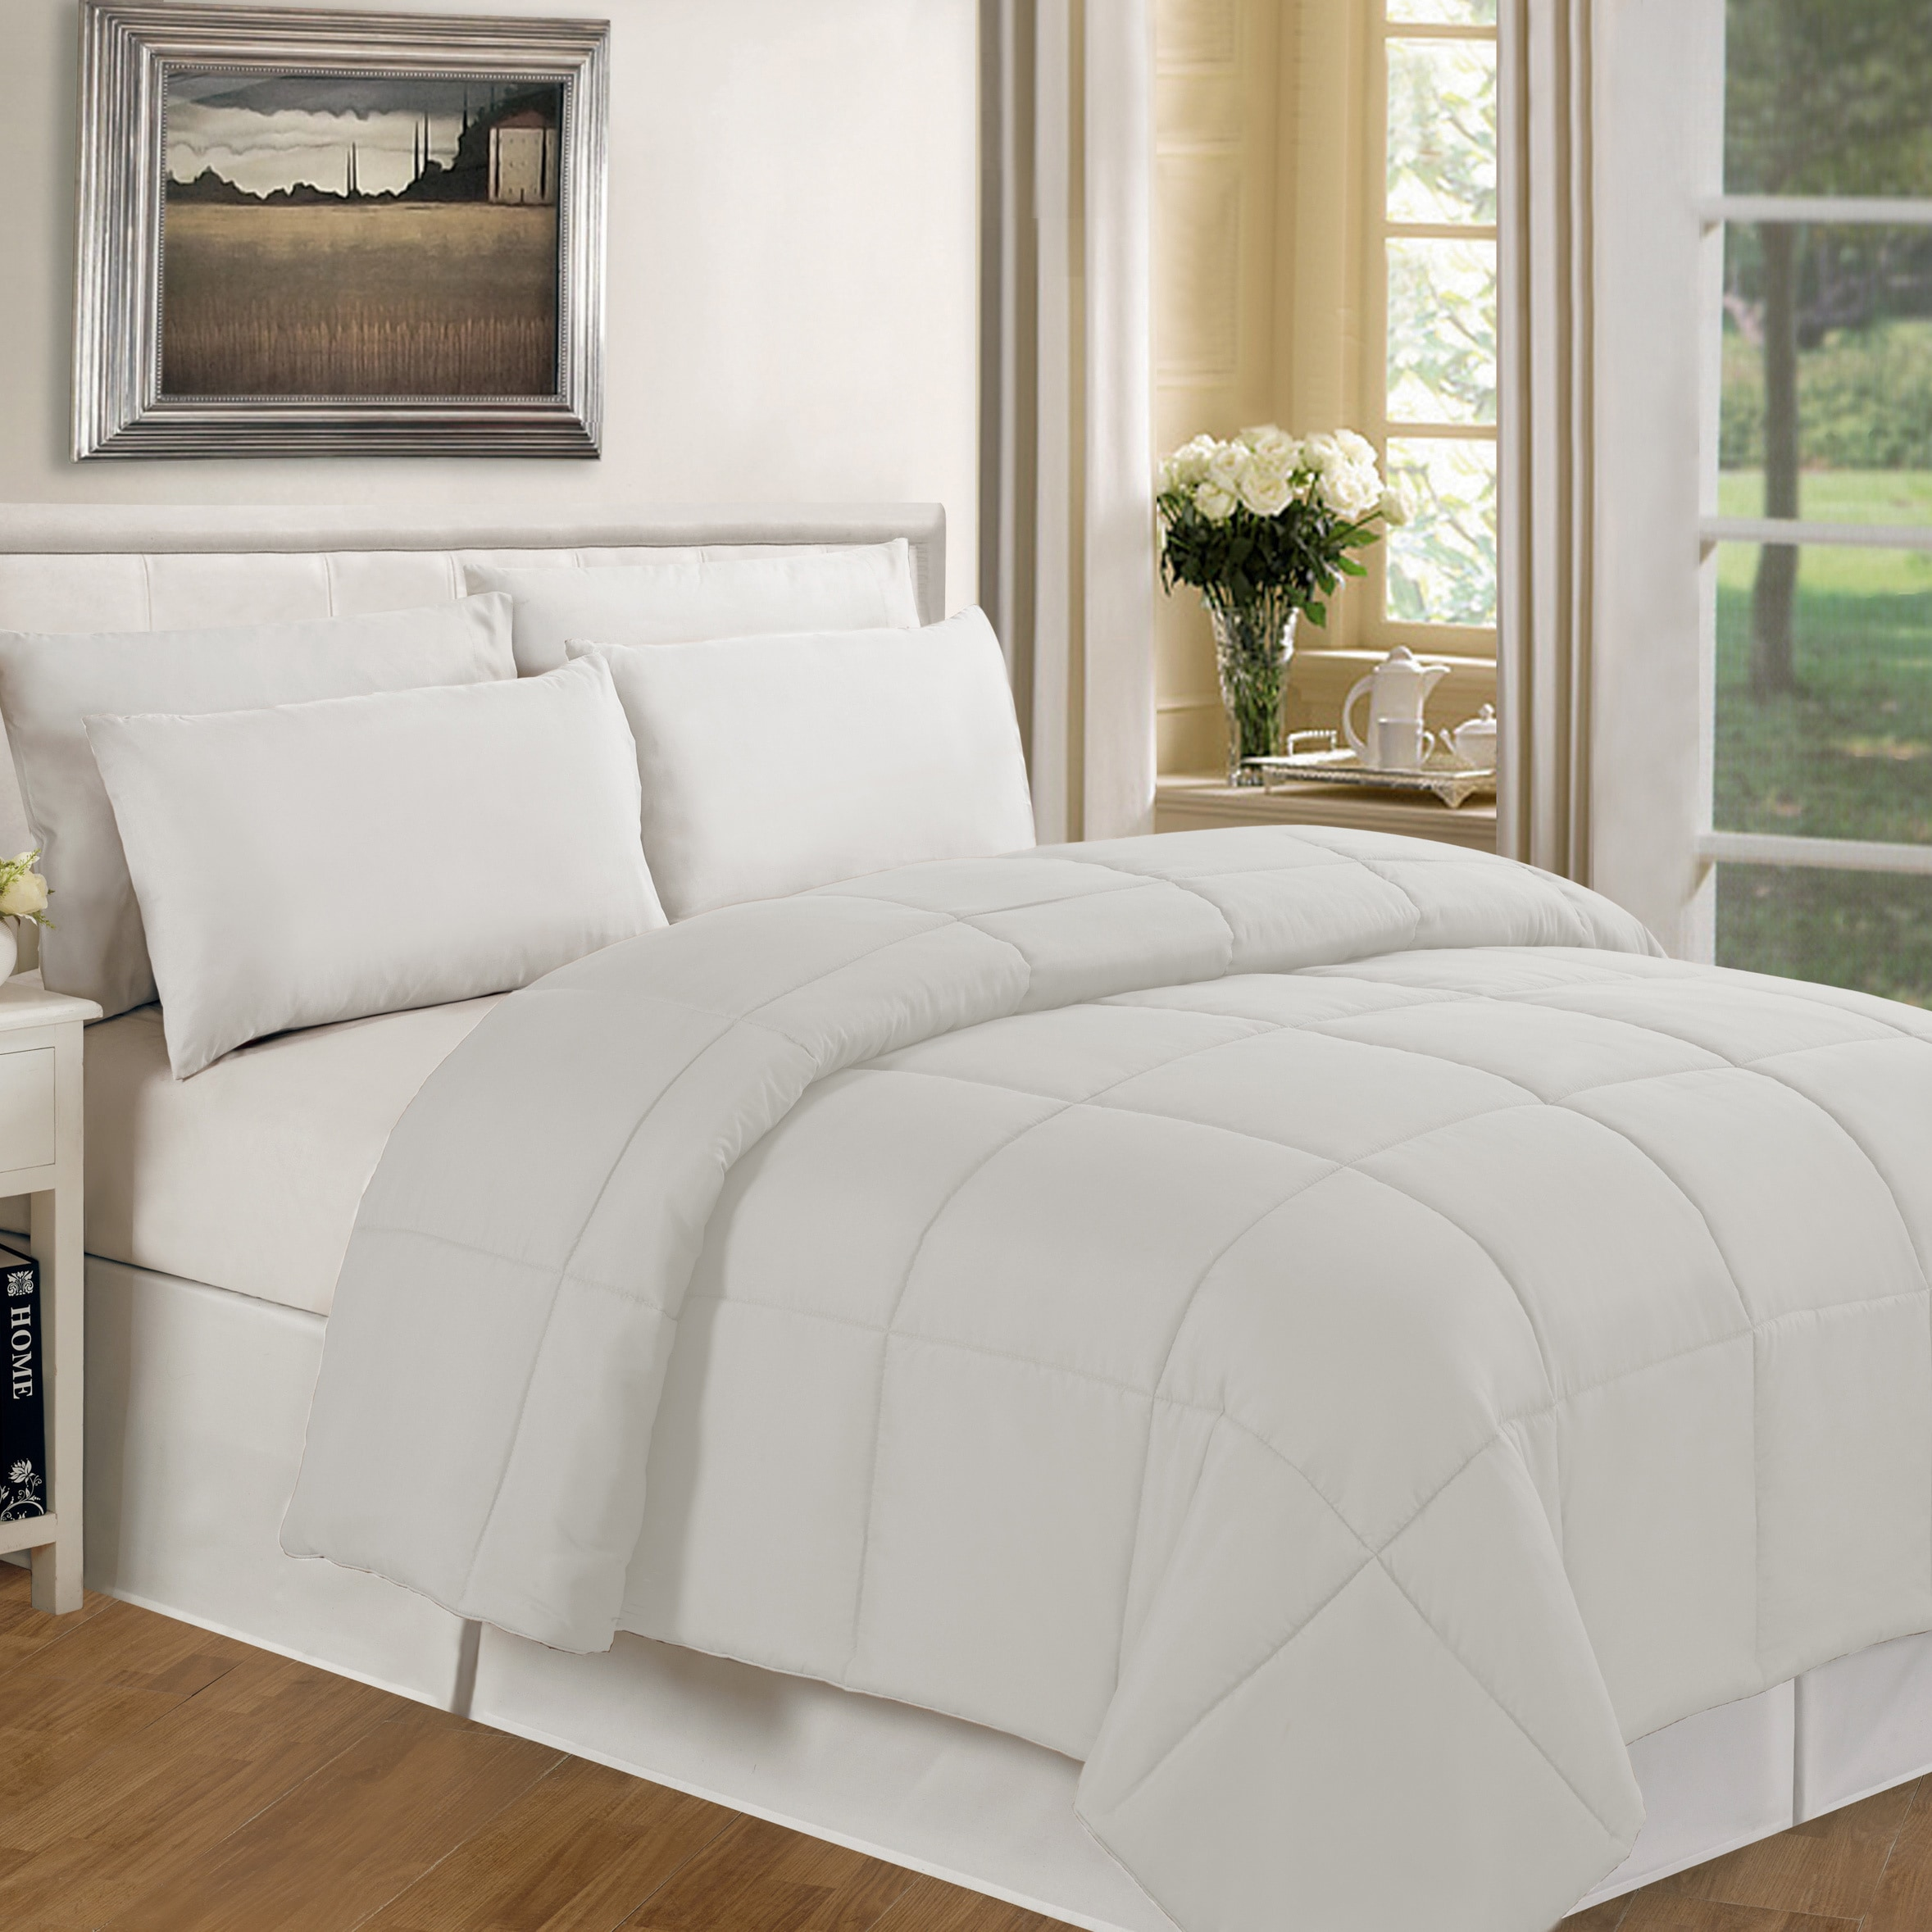 Richmond Home Twin Comforter in Black